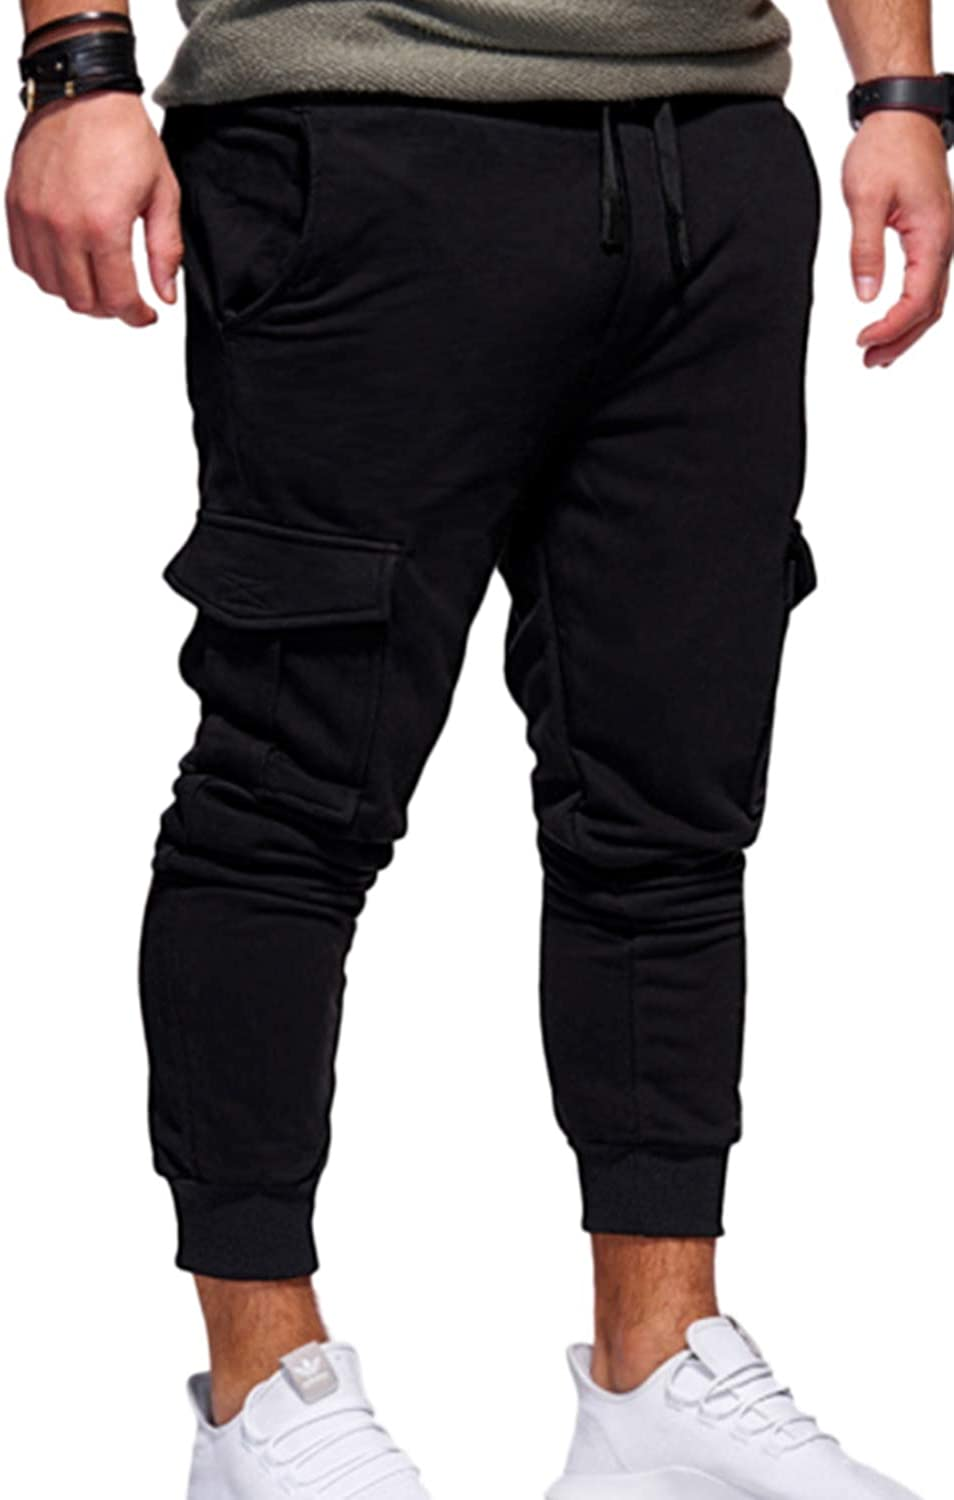 Jomuhoy Men Pants Sport Fitness Solid Multi Pocket Sweatpants Trouser